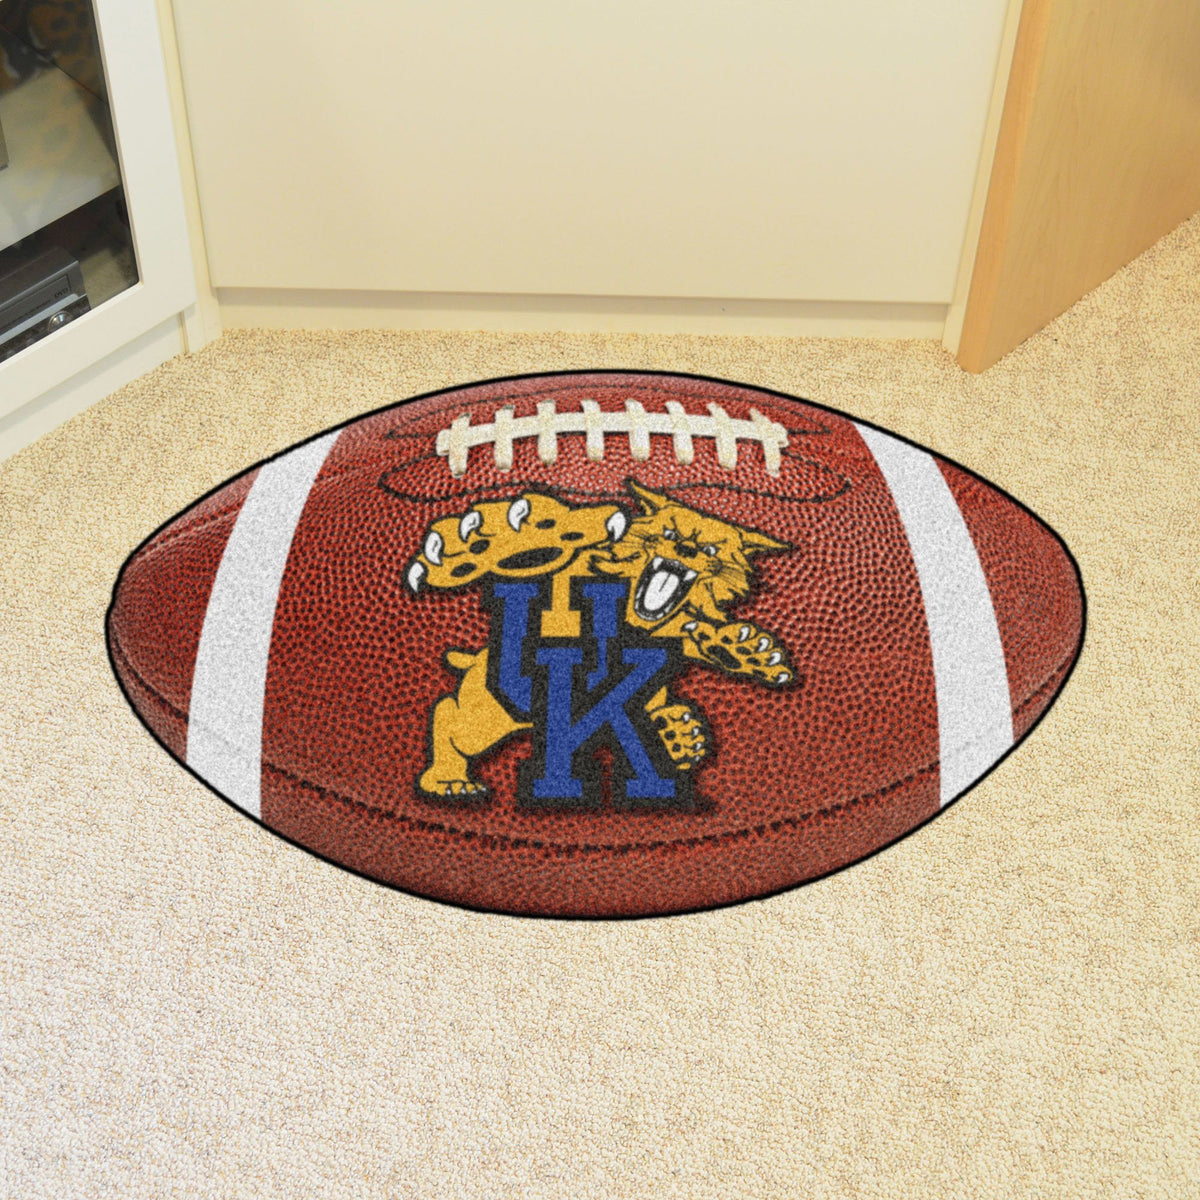 Collegiate - Football Mat: A - K Collegiate Mats, Rectangular Mats, Football Mat, Collegiate, Home Fan Mats Kentucky